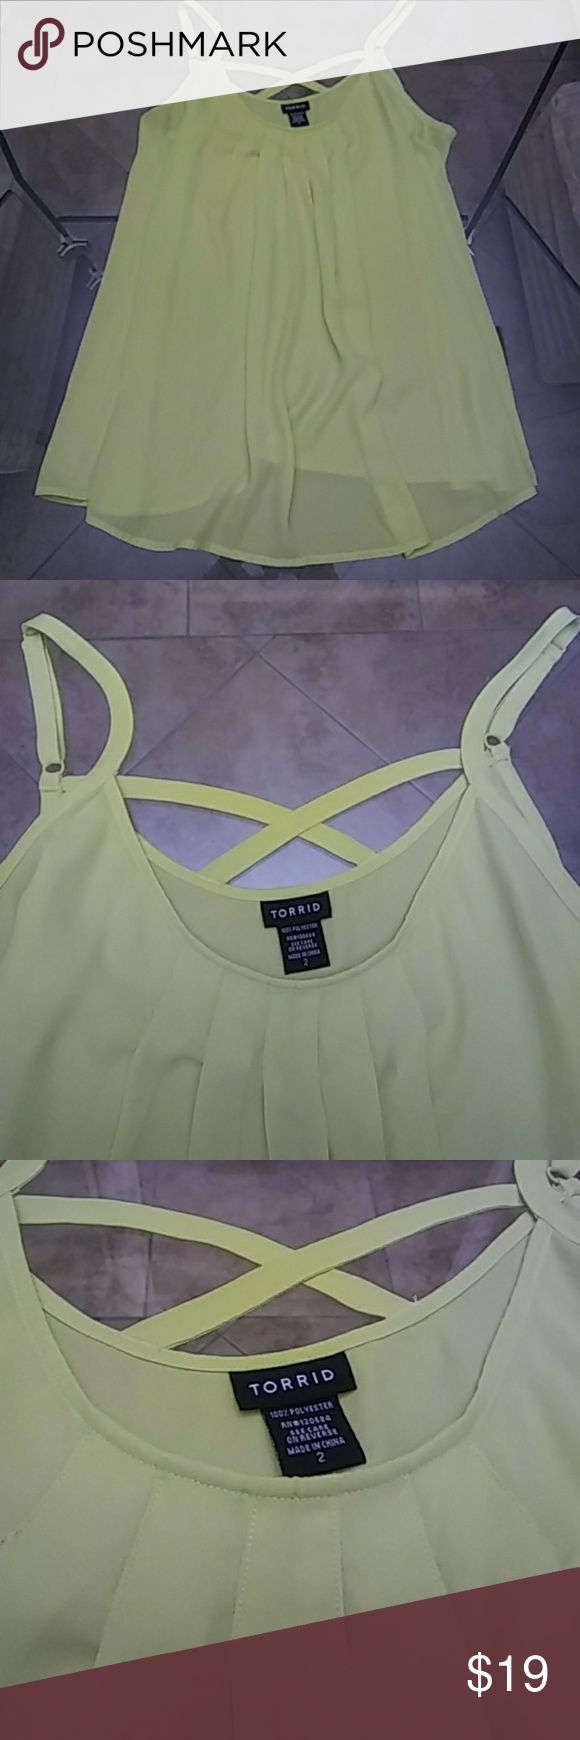 TORRID Flowy Cami NWOT - Really pretty top! Neon color. Never worn. Cute criss cross straps on the back. Smoke free home. torrid Tops Camisoles